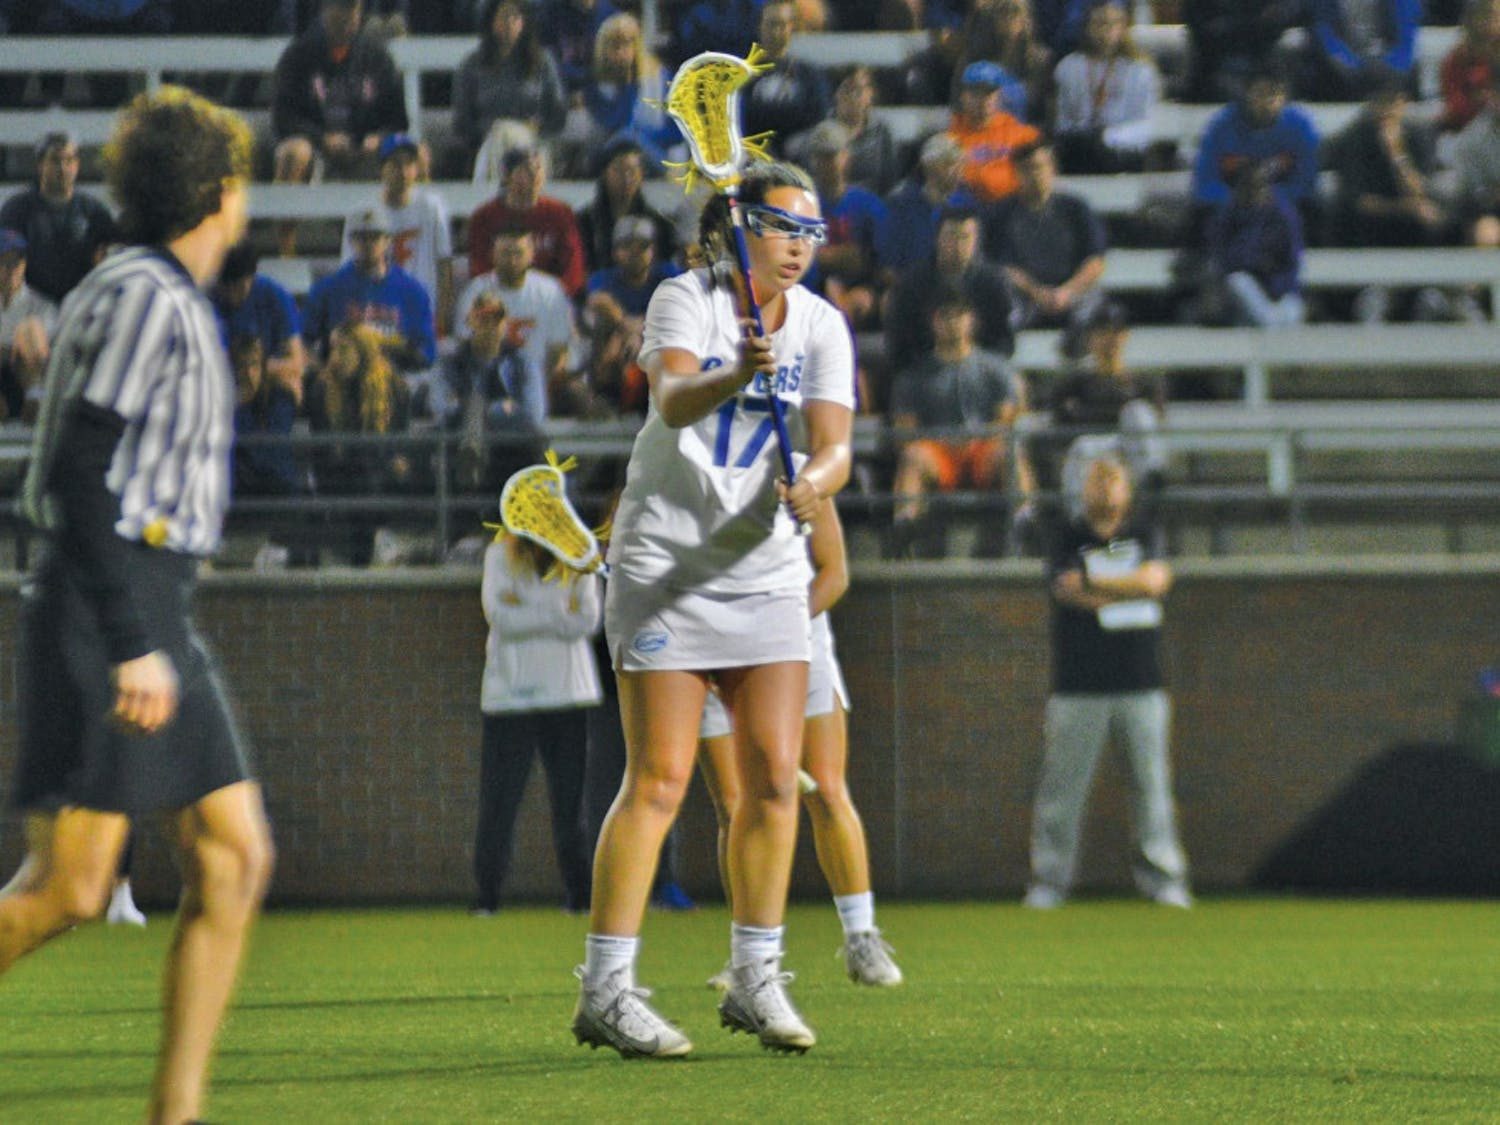 Midfielder Shannon Kavanagh recorded a career-high eight points and 13 draw controls in Florida's 16-5 win over UConn on Saturday.